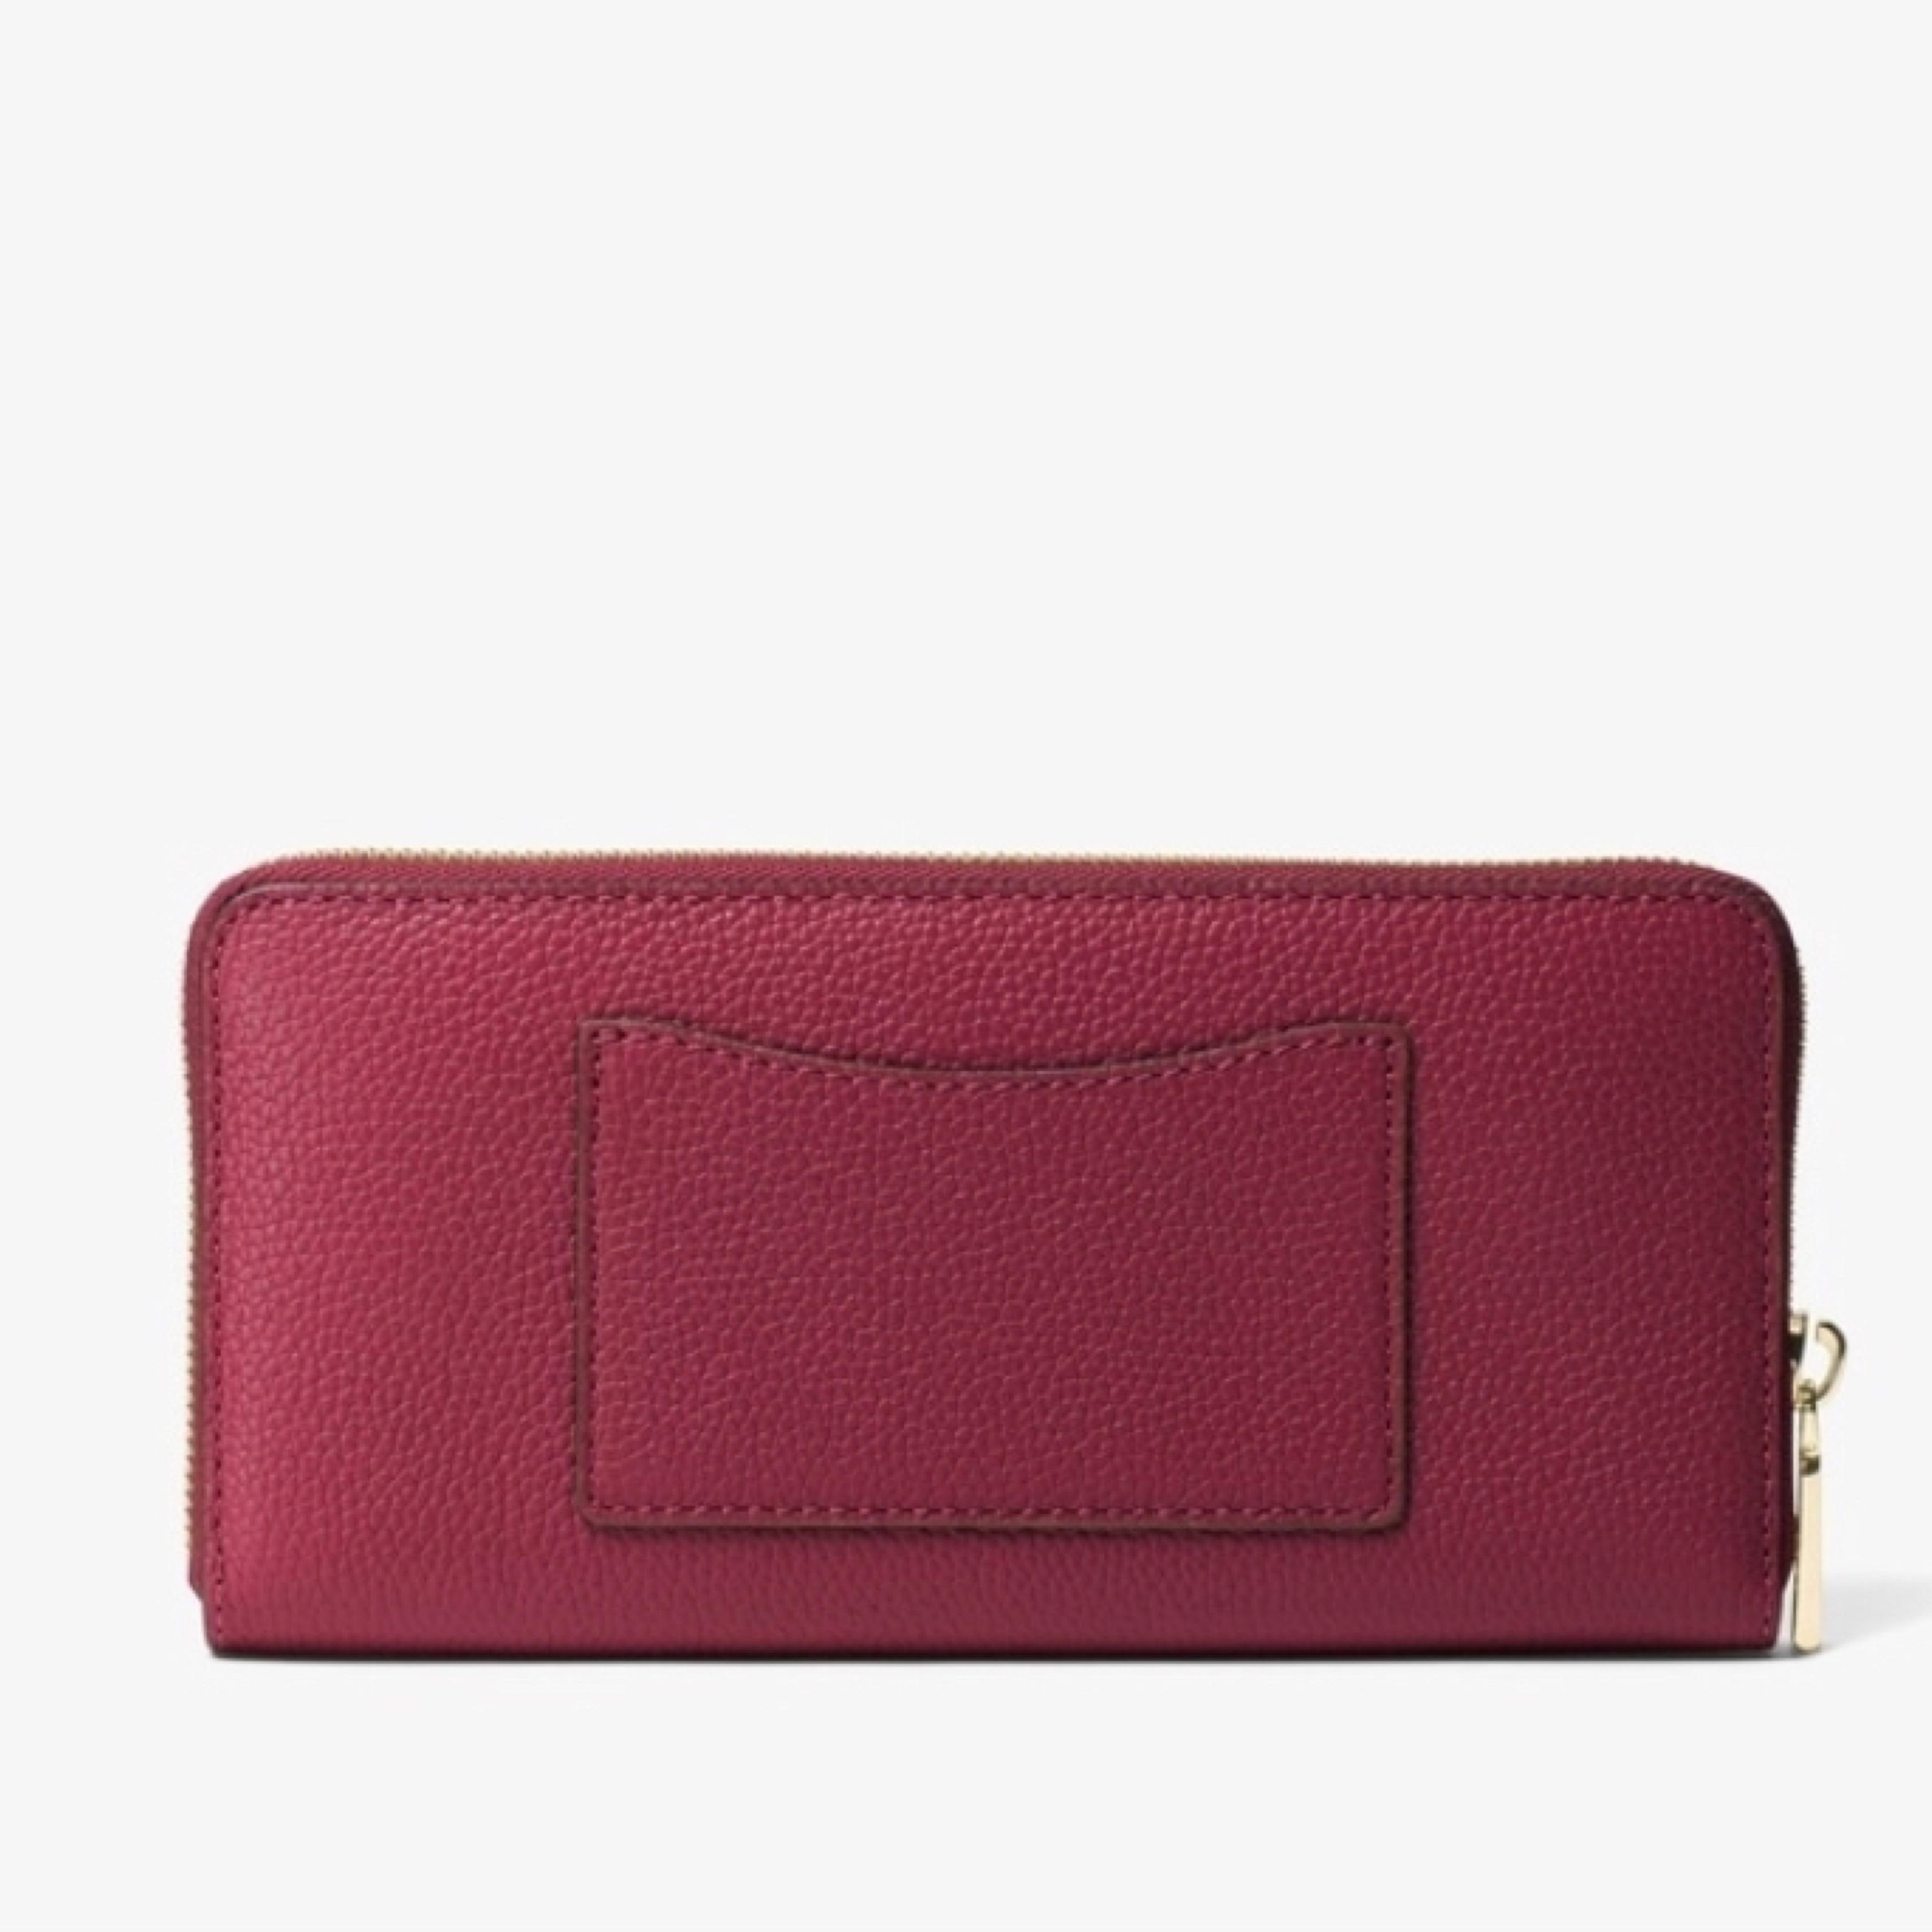 795a762bb1c ... coupon code for michael kors mulberry grey jet set saffiano leather  continental wallet tradesy e0650 881c0